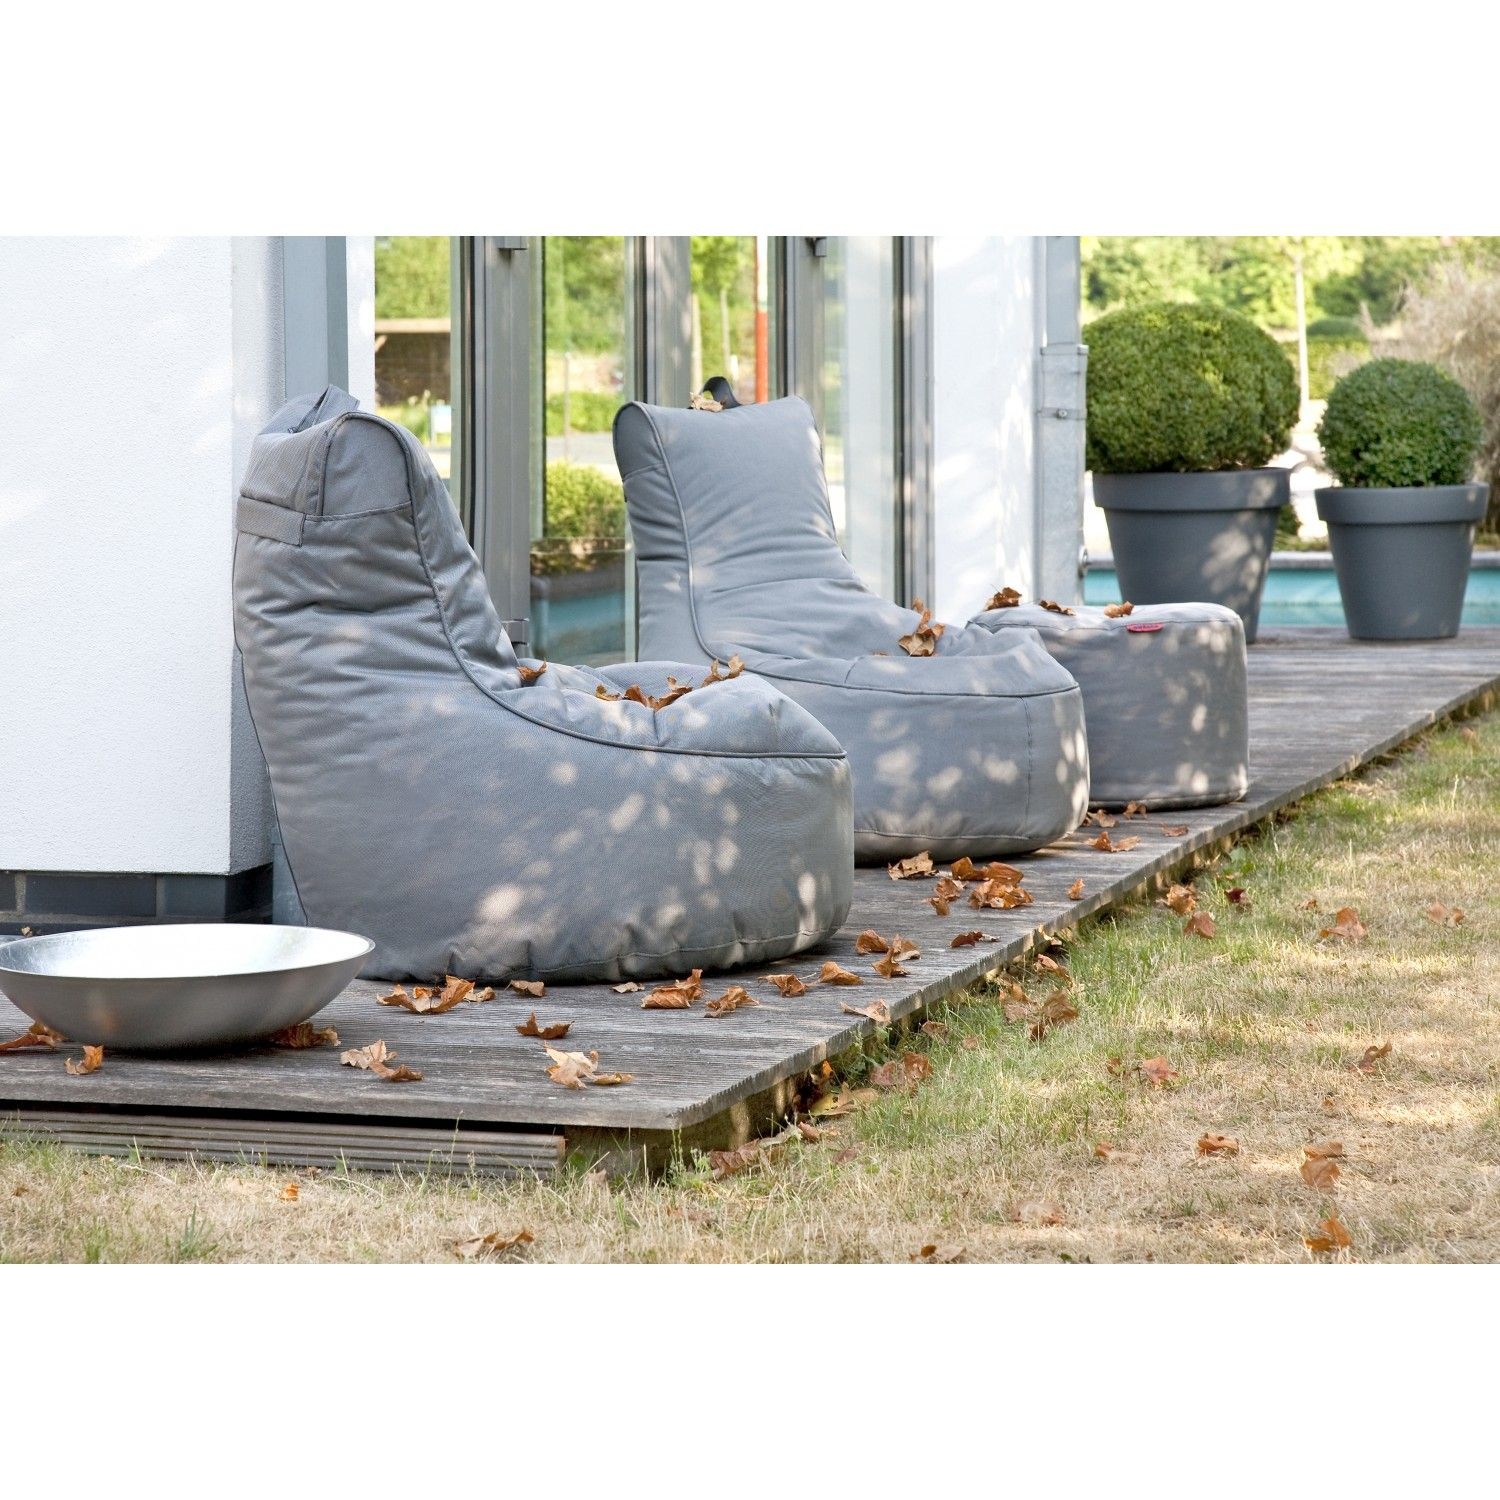 Sitzsack Garten Outbag Sitzsack Slope Fabric Outdoor Neoliving De Living At